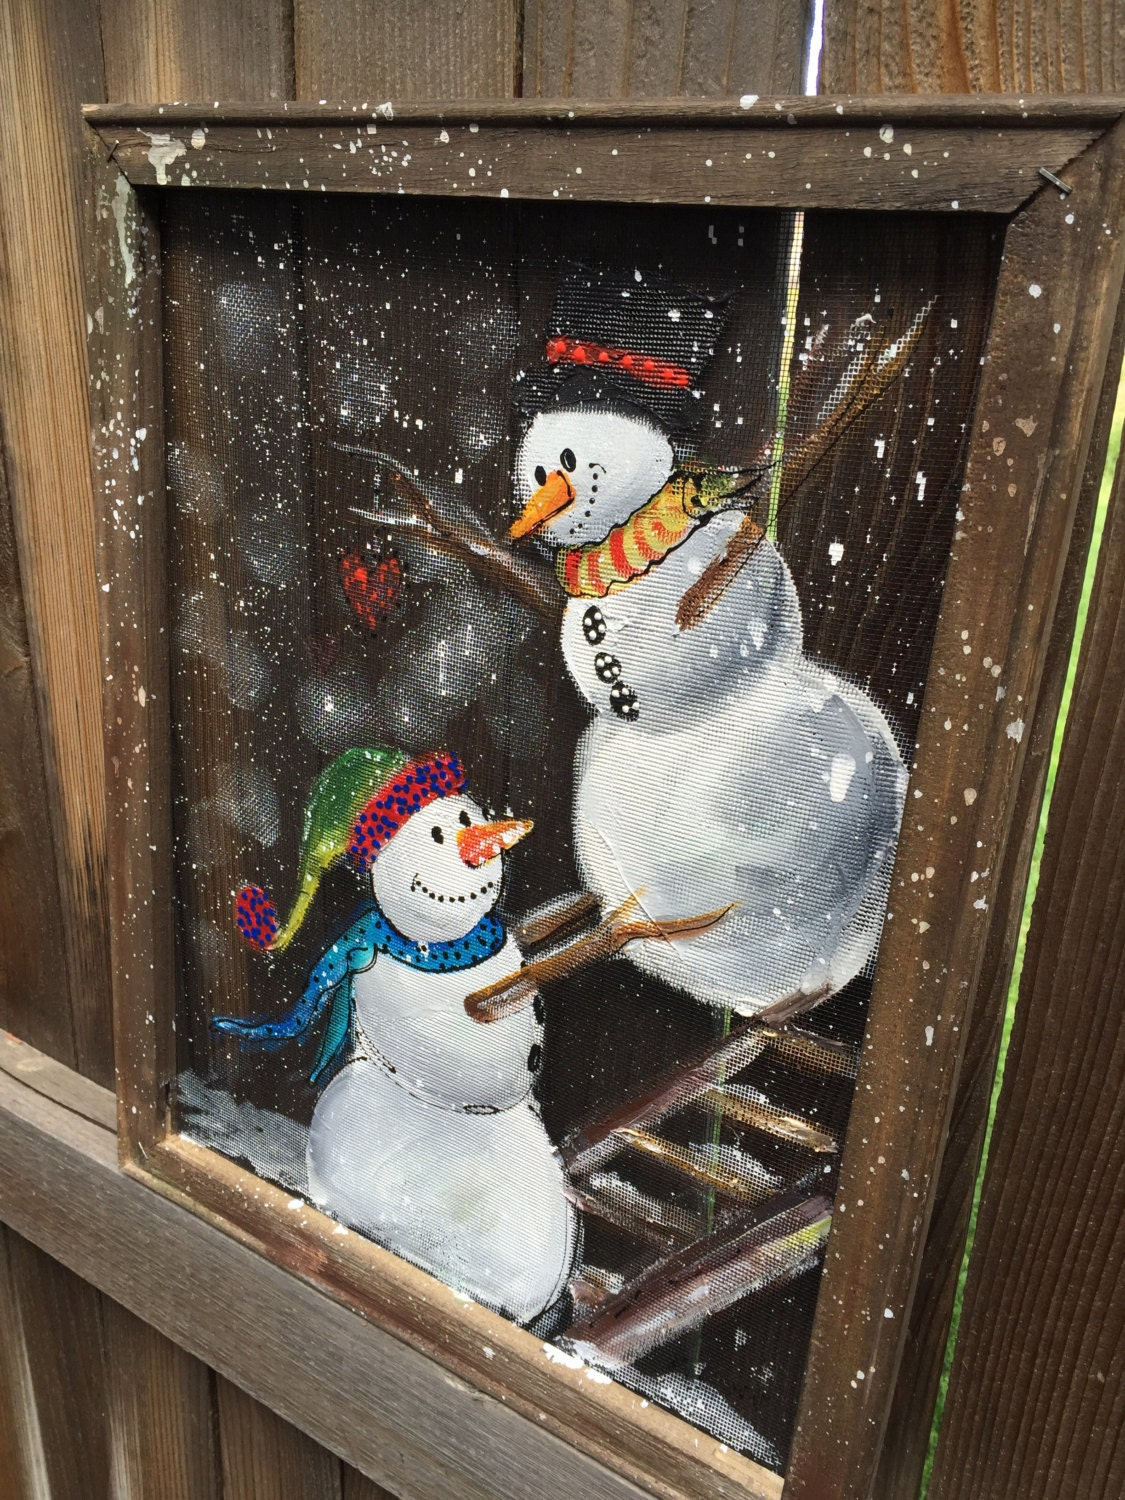 Snowman Painted On Screen Recycled Personalize This For